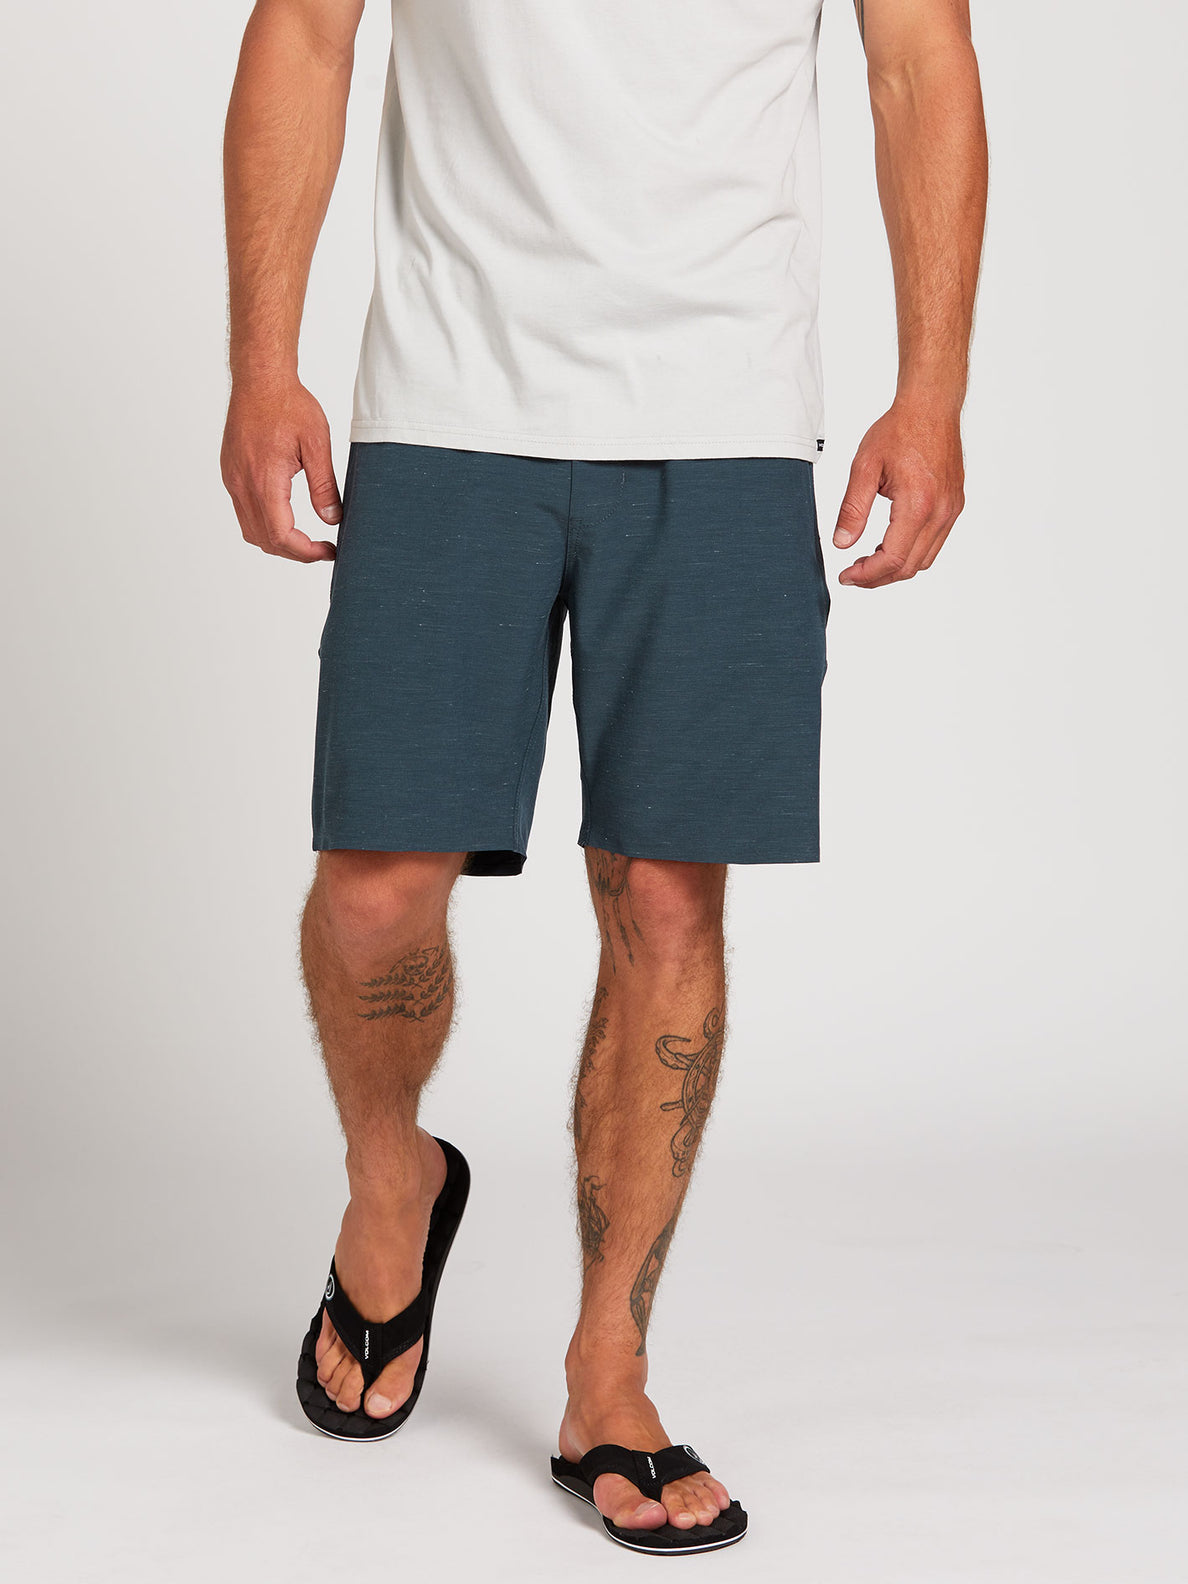 Packasack Lite Shorts - Faded Navy (A3212001_FDN) [1]